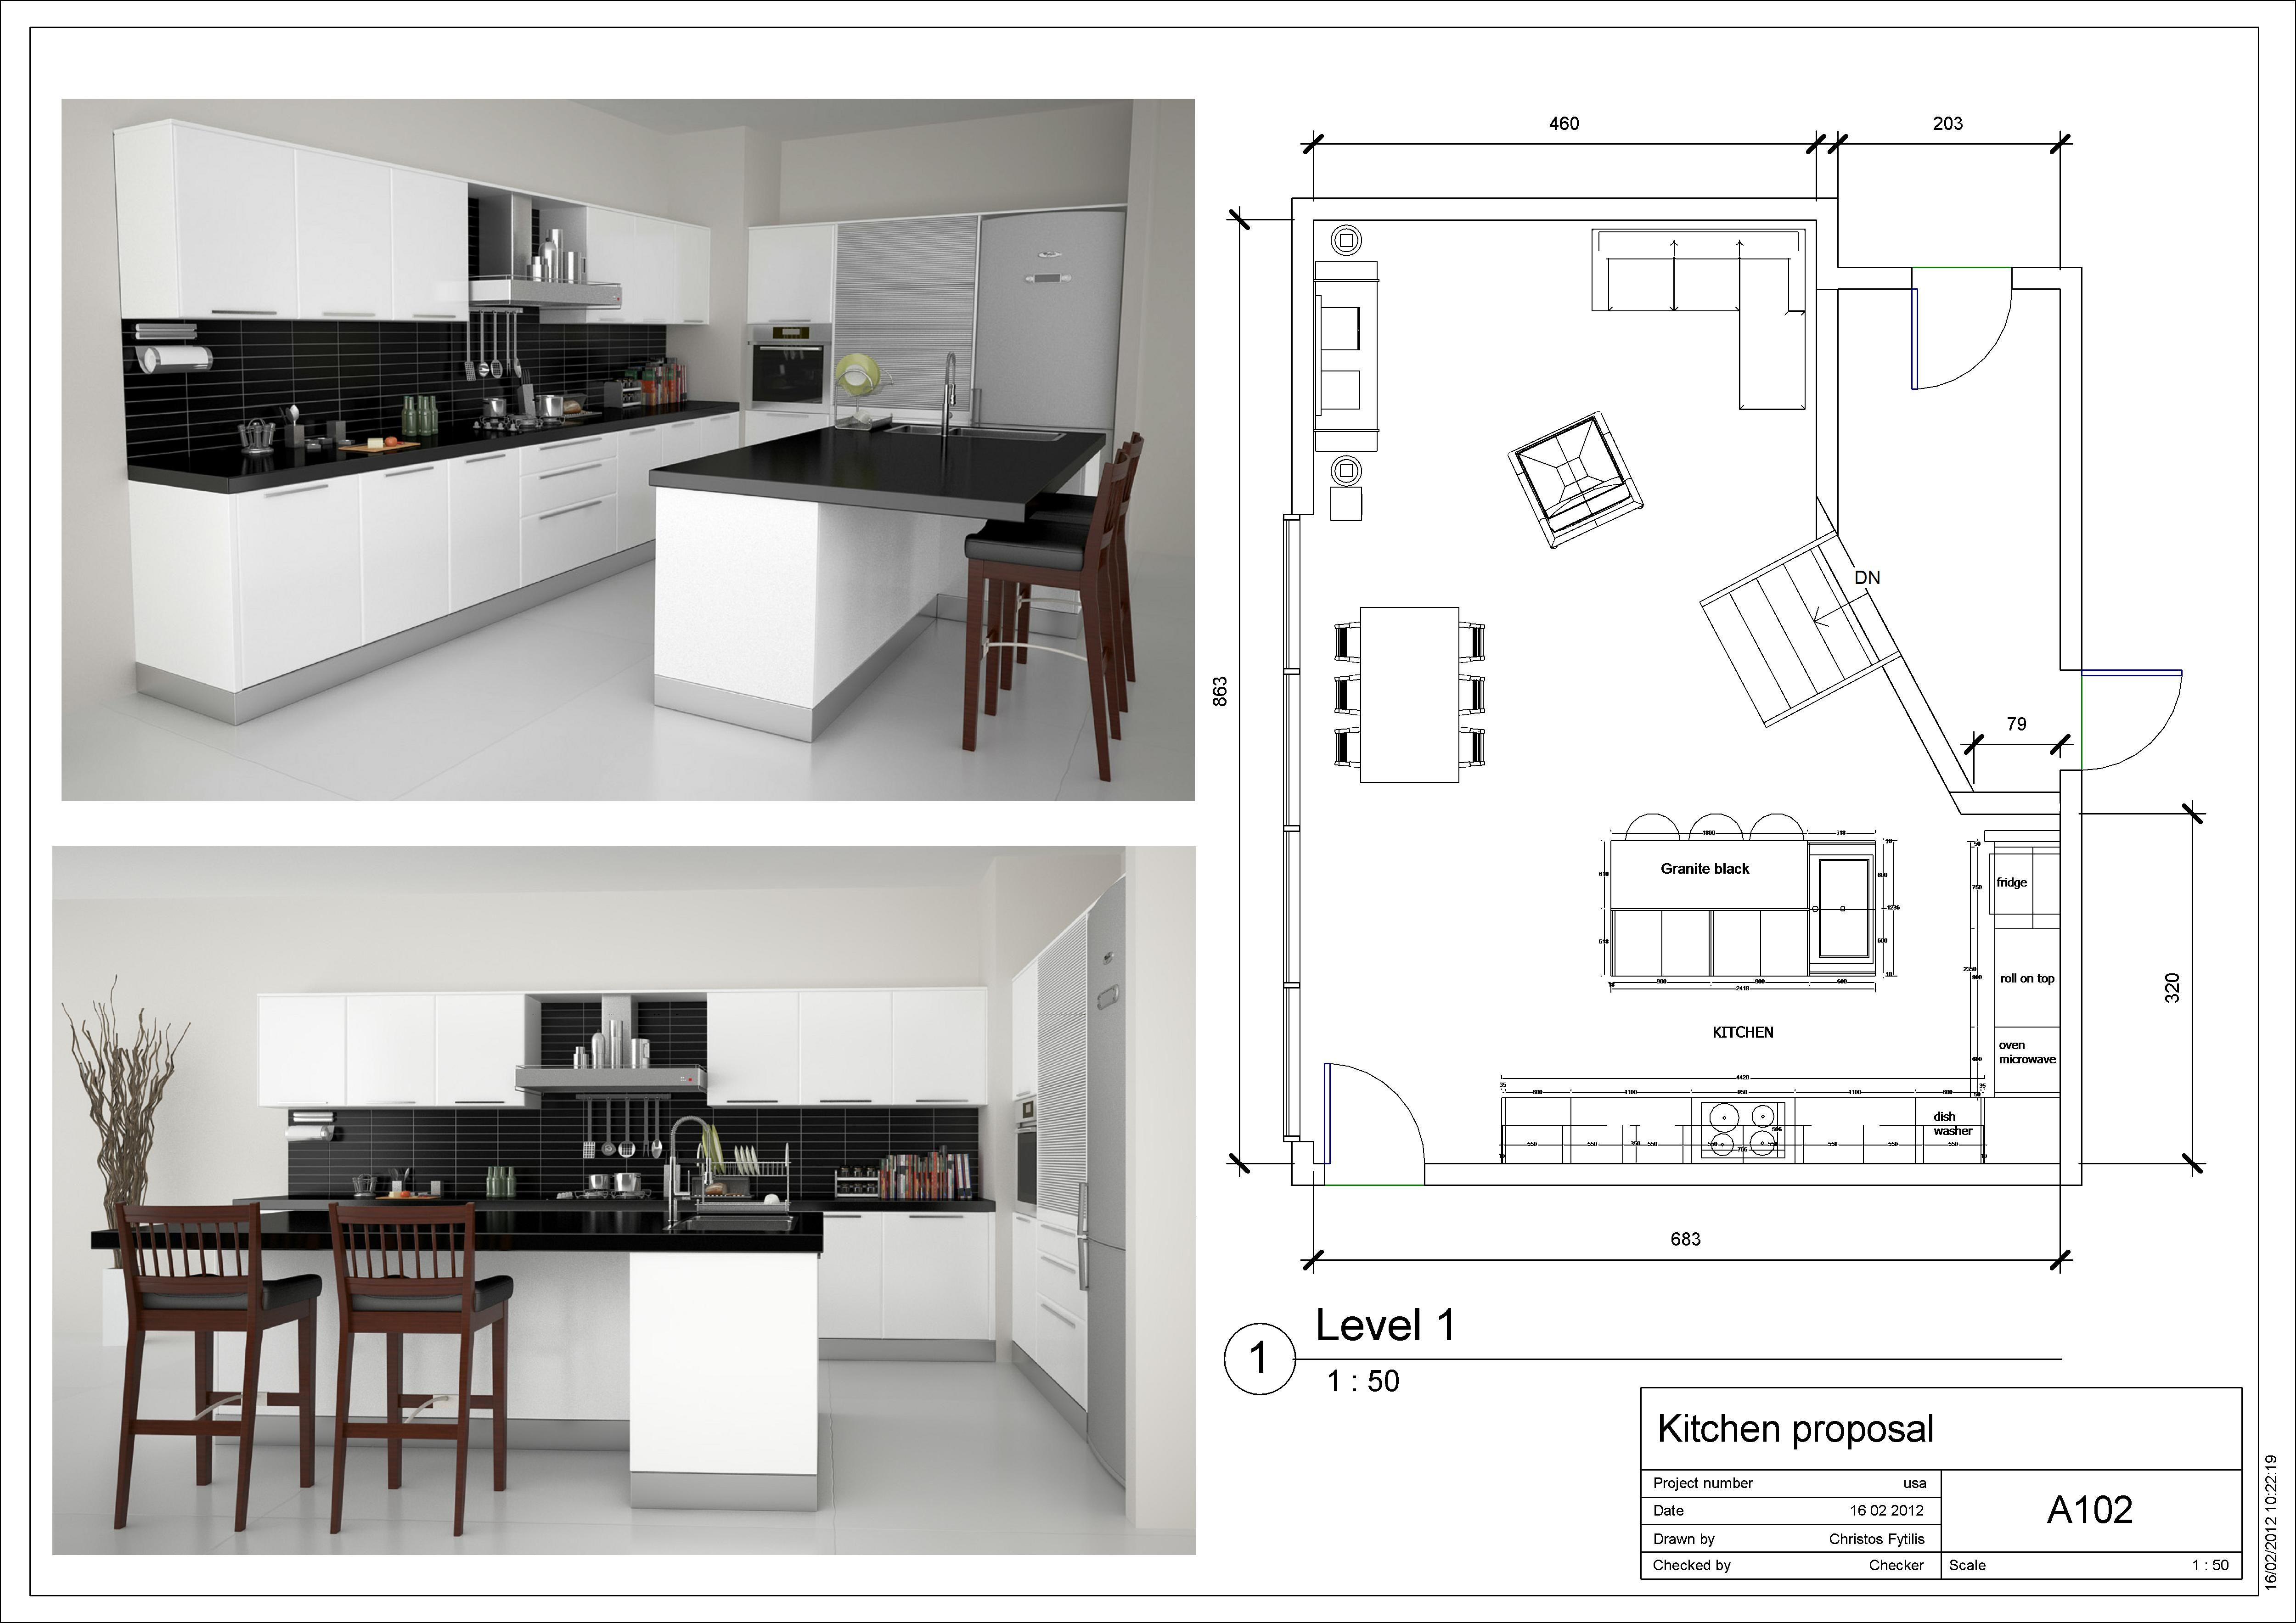 amazing planning a kitchen remodel http www kitchenstir com 11092742 amazing planning on kitchen remodel planner id=81008